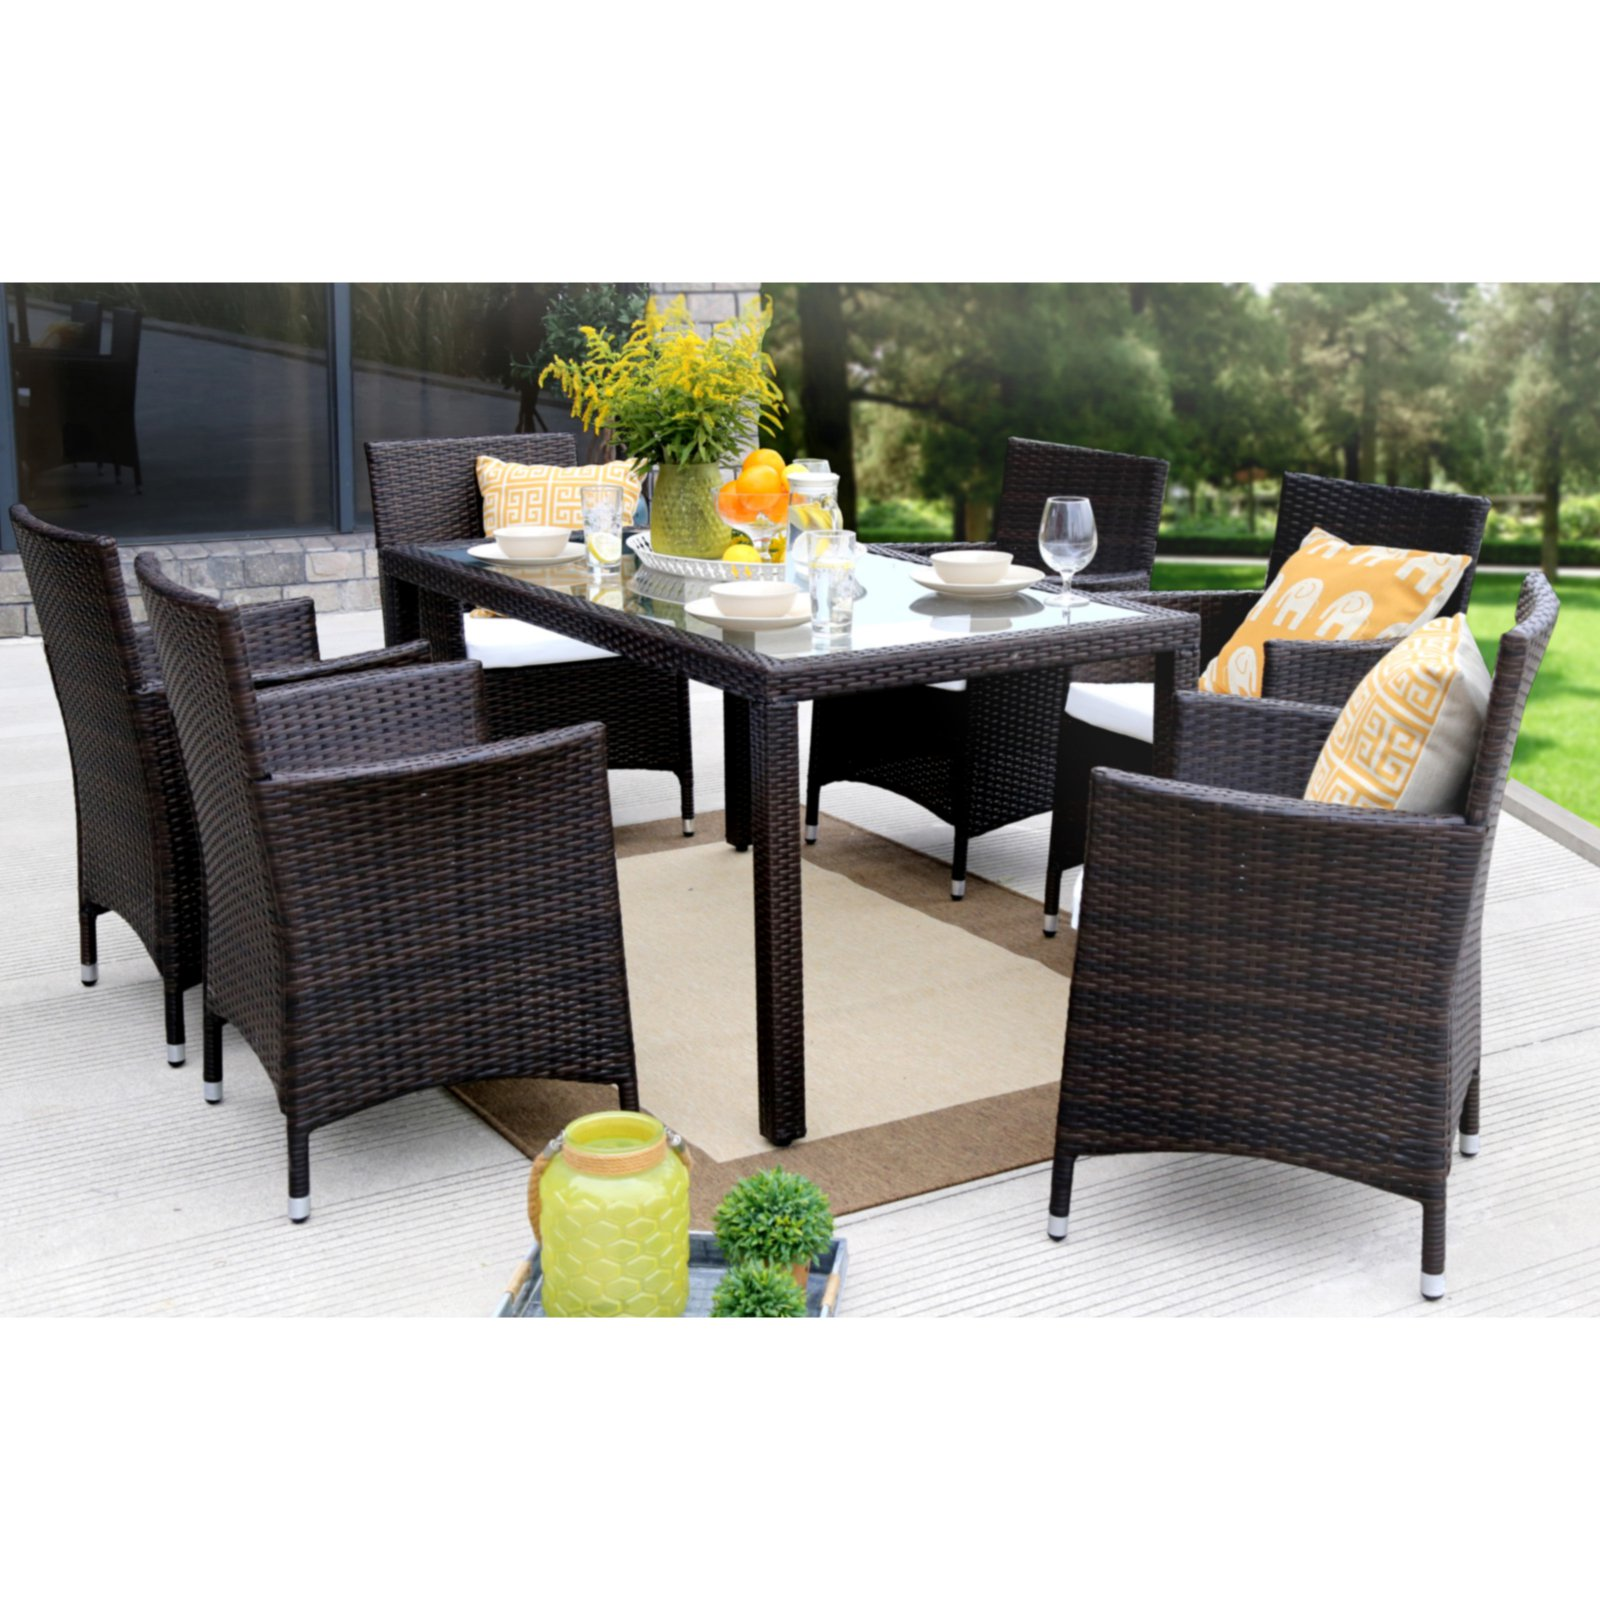 Baner Garden Outdoor Furniture Complete Patio Cushion PE Wicker Rattan Garden Dining Room... by Overstock